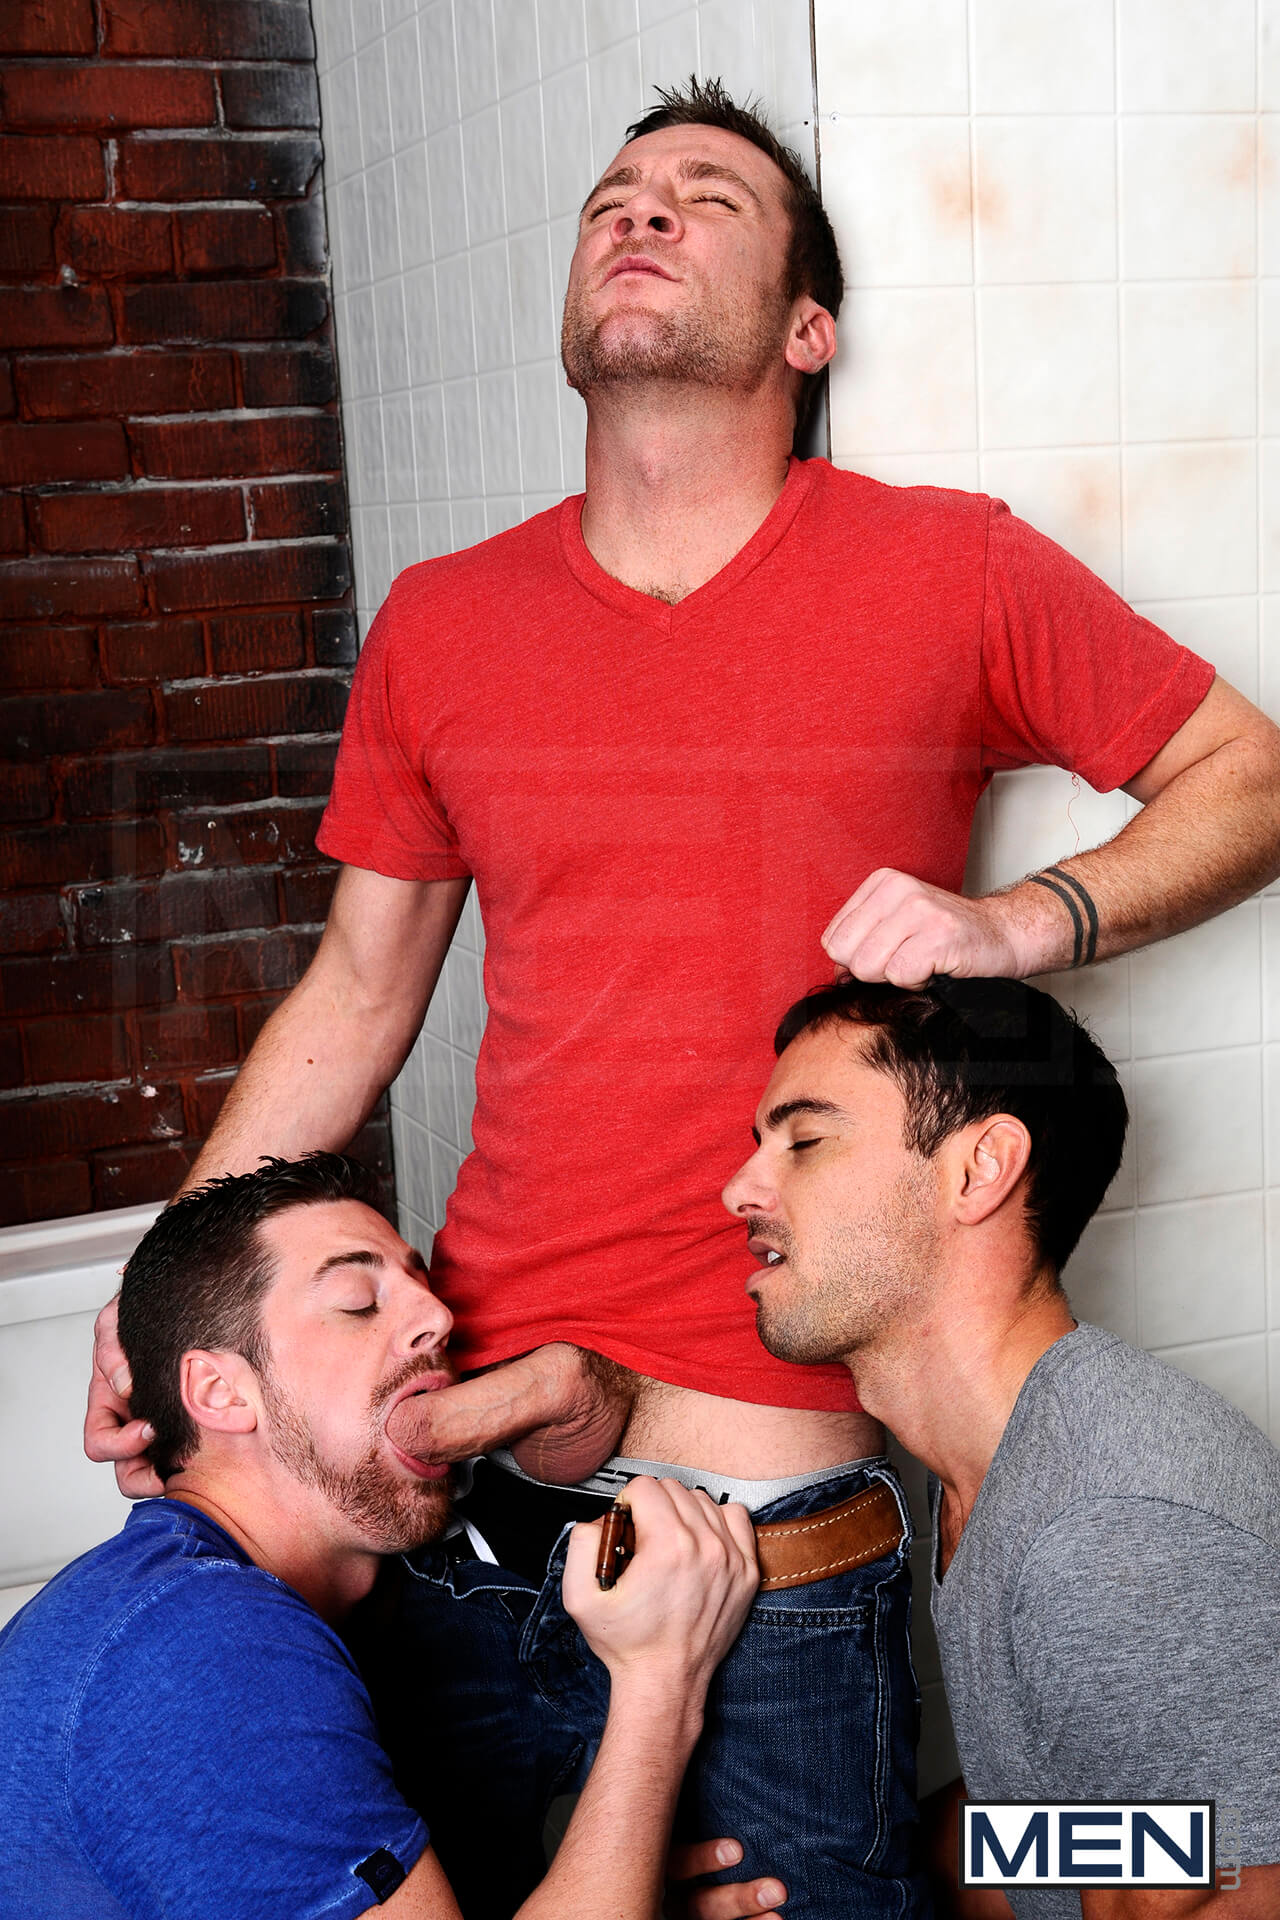 Donny Wright Trevor Knight fuck Andrew Stark gay hot daddy dude men porn Tales John